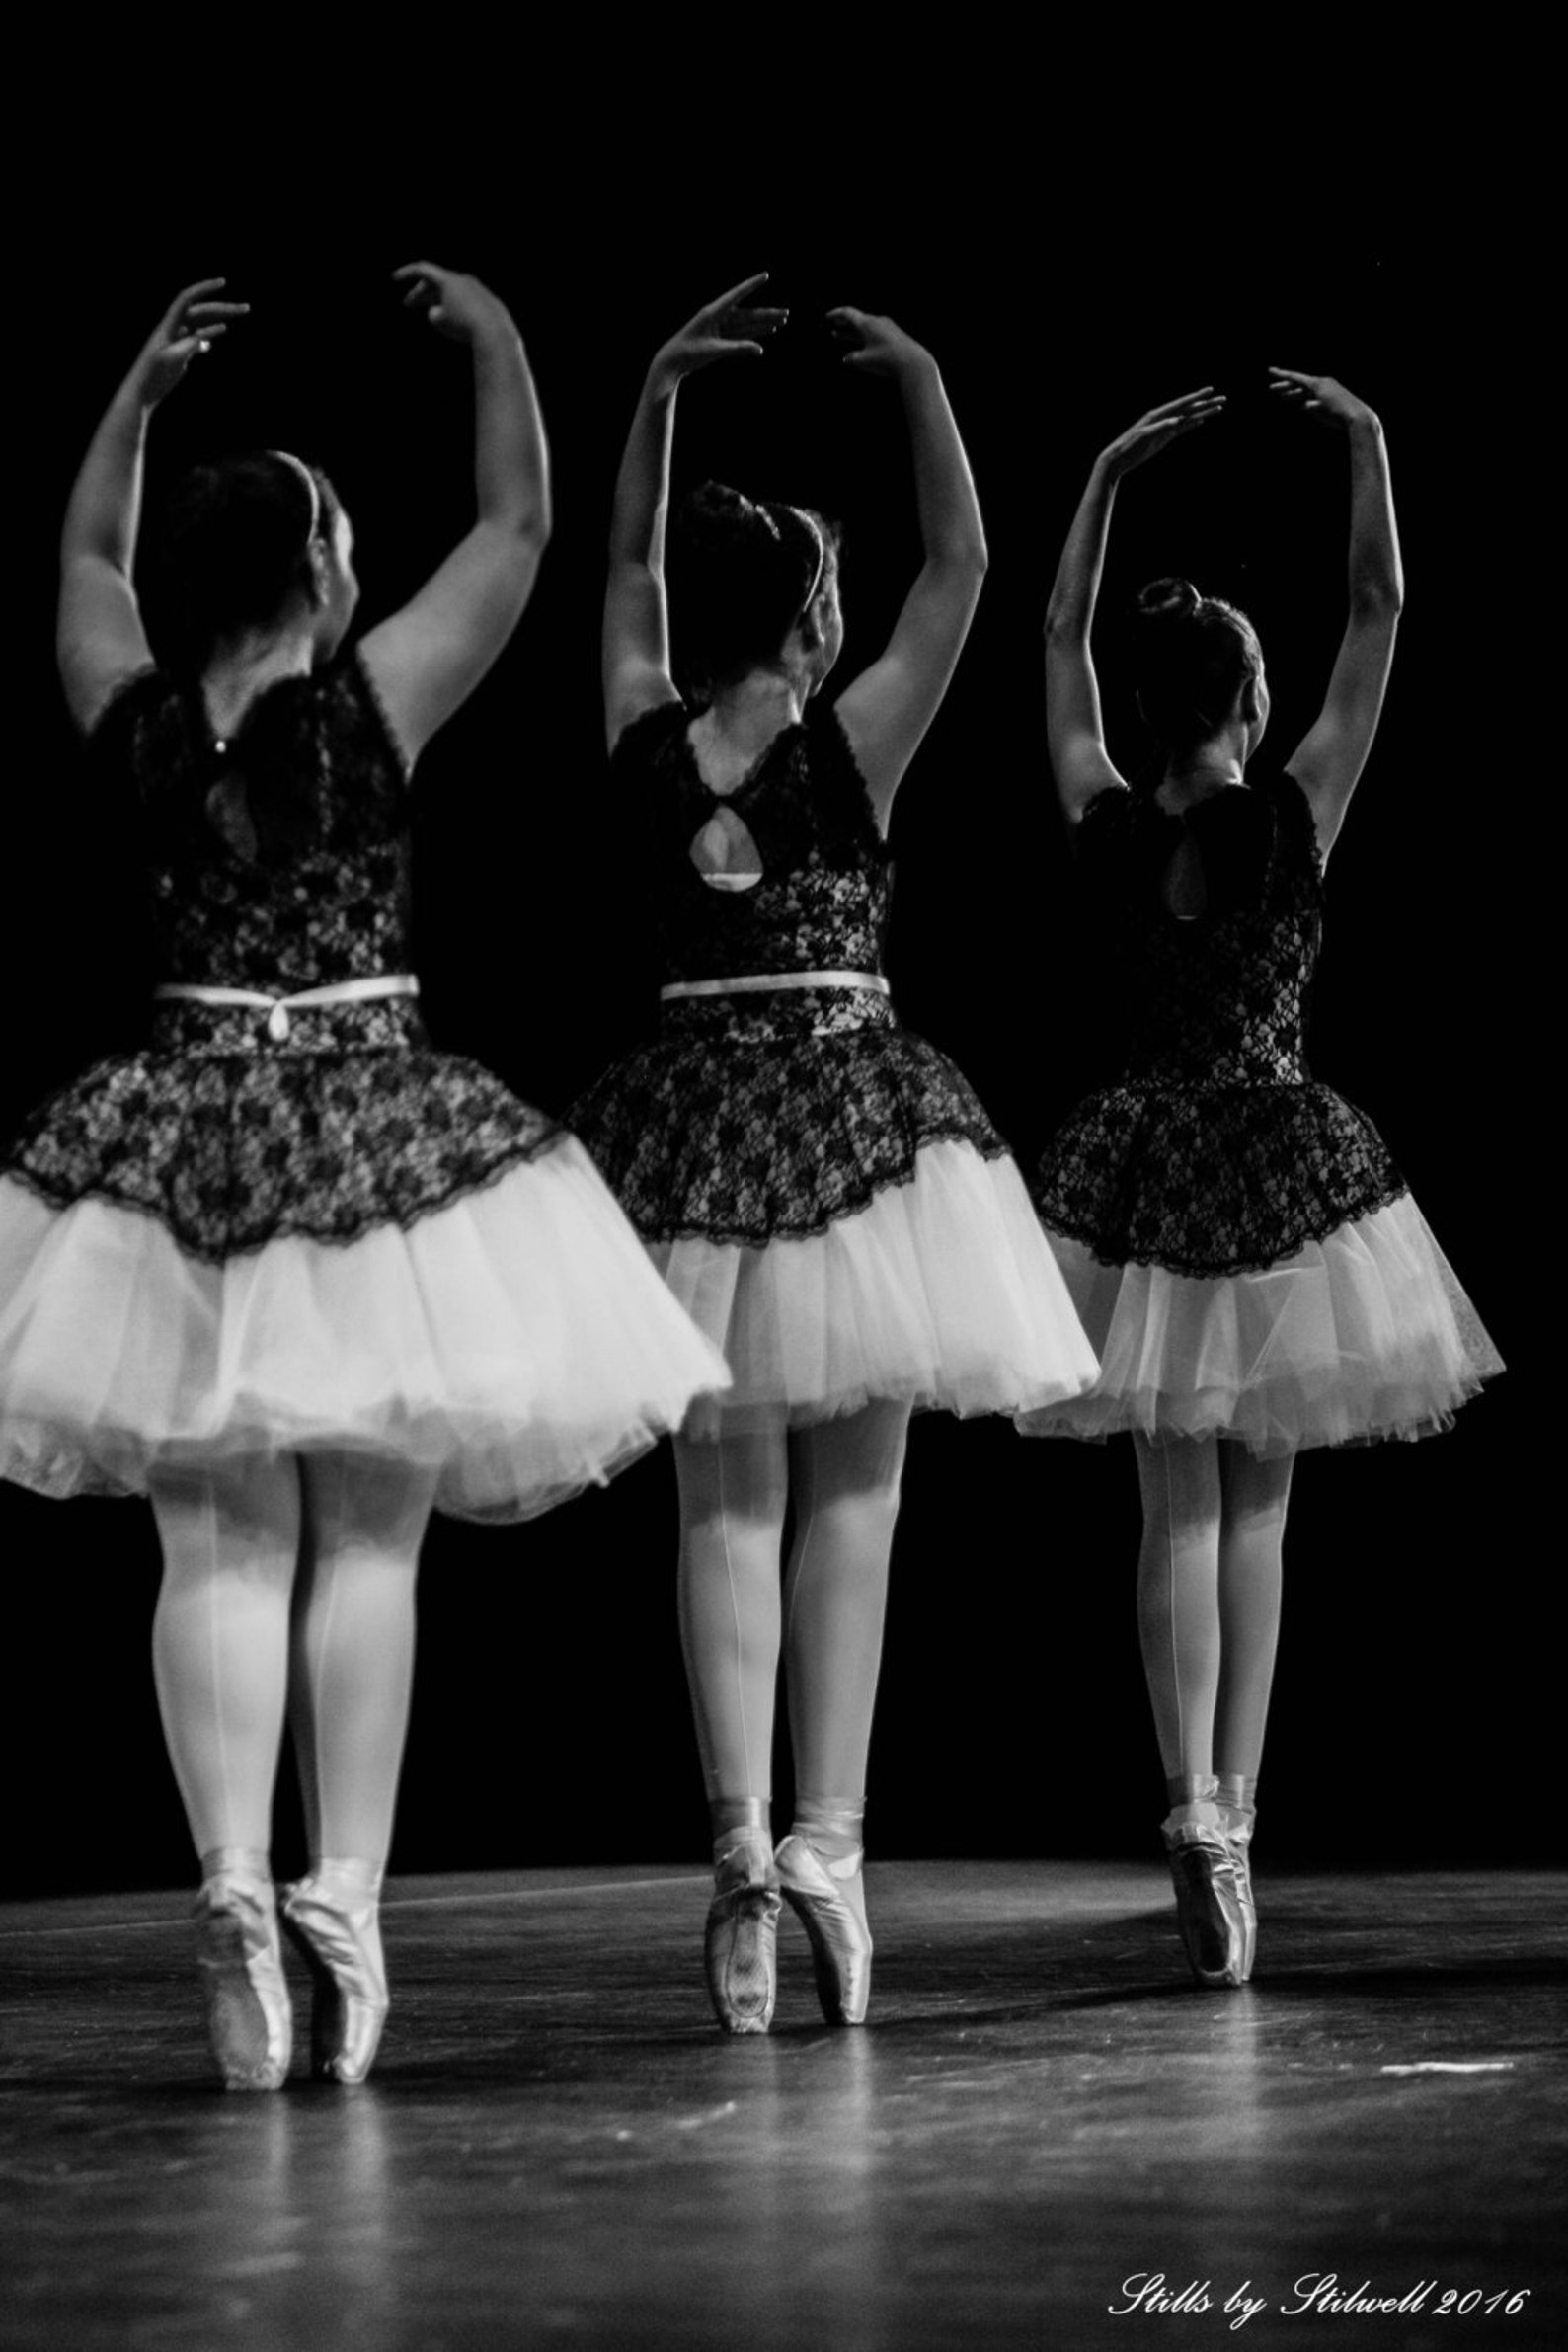 ballet photography ballerina on pointe ballet dancers print black & white photo dance studio decor little girls room nursery dec